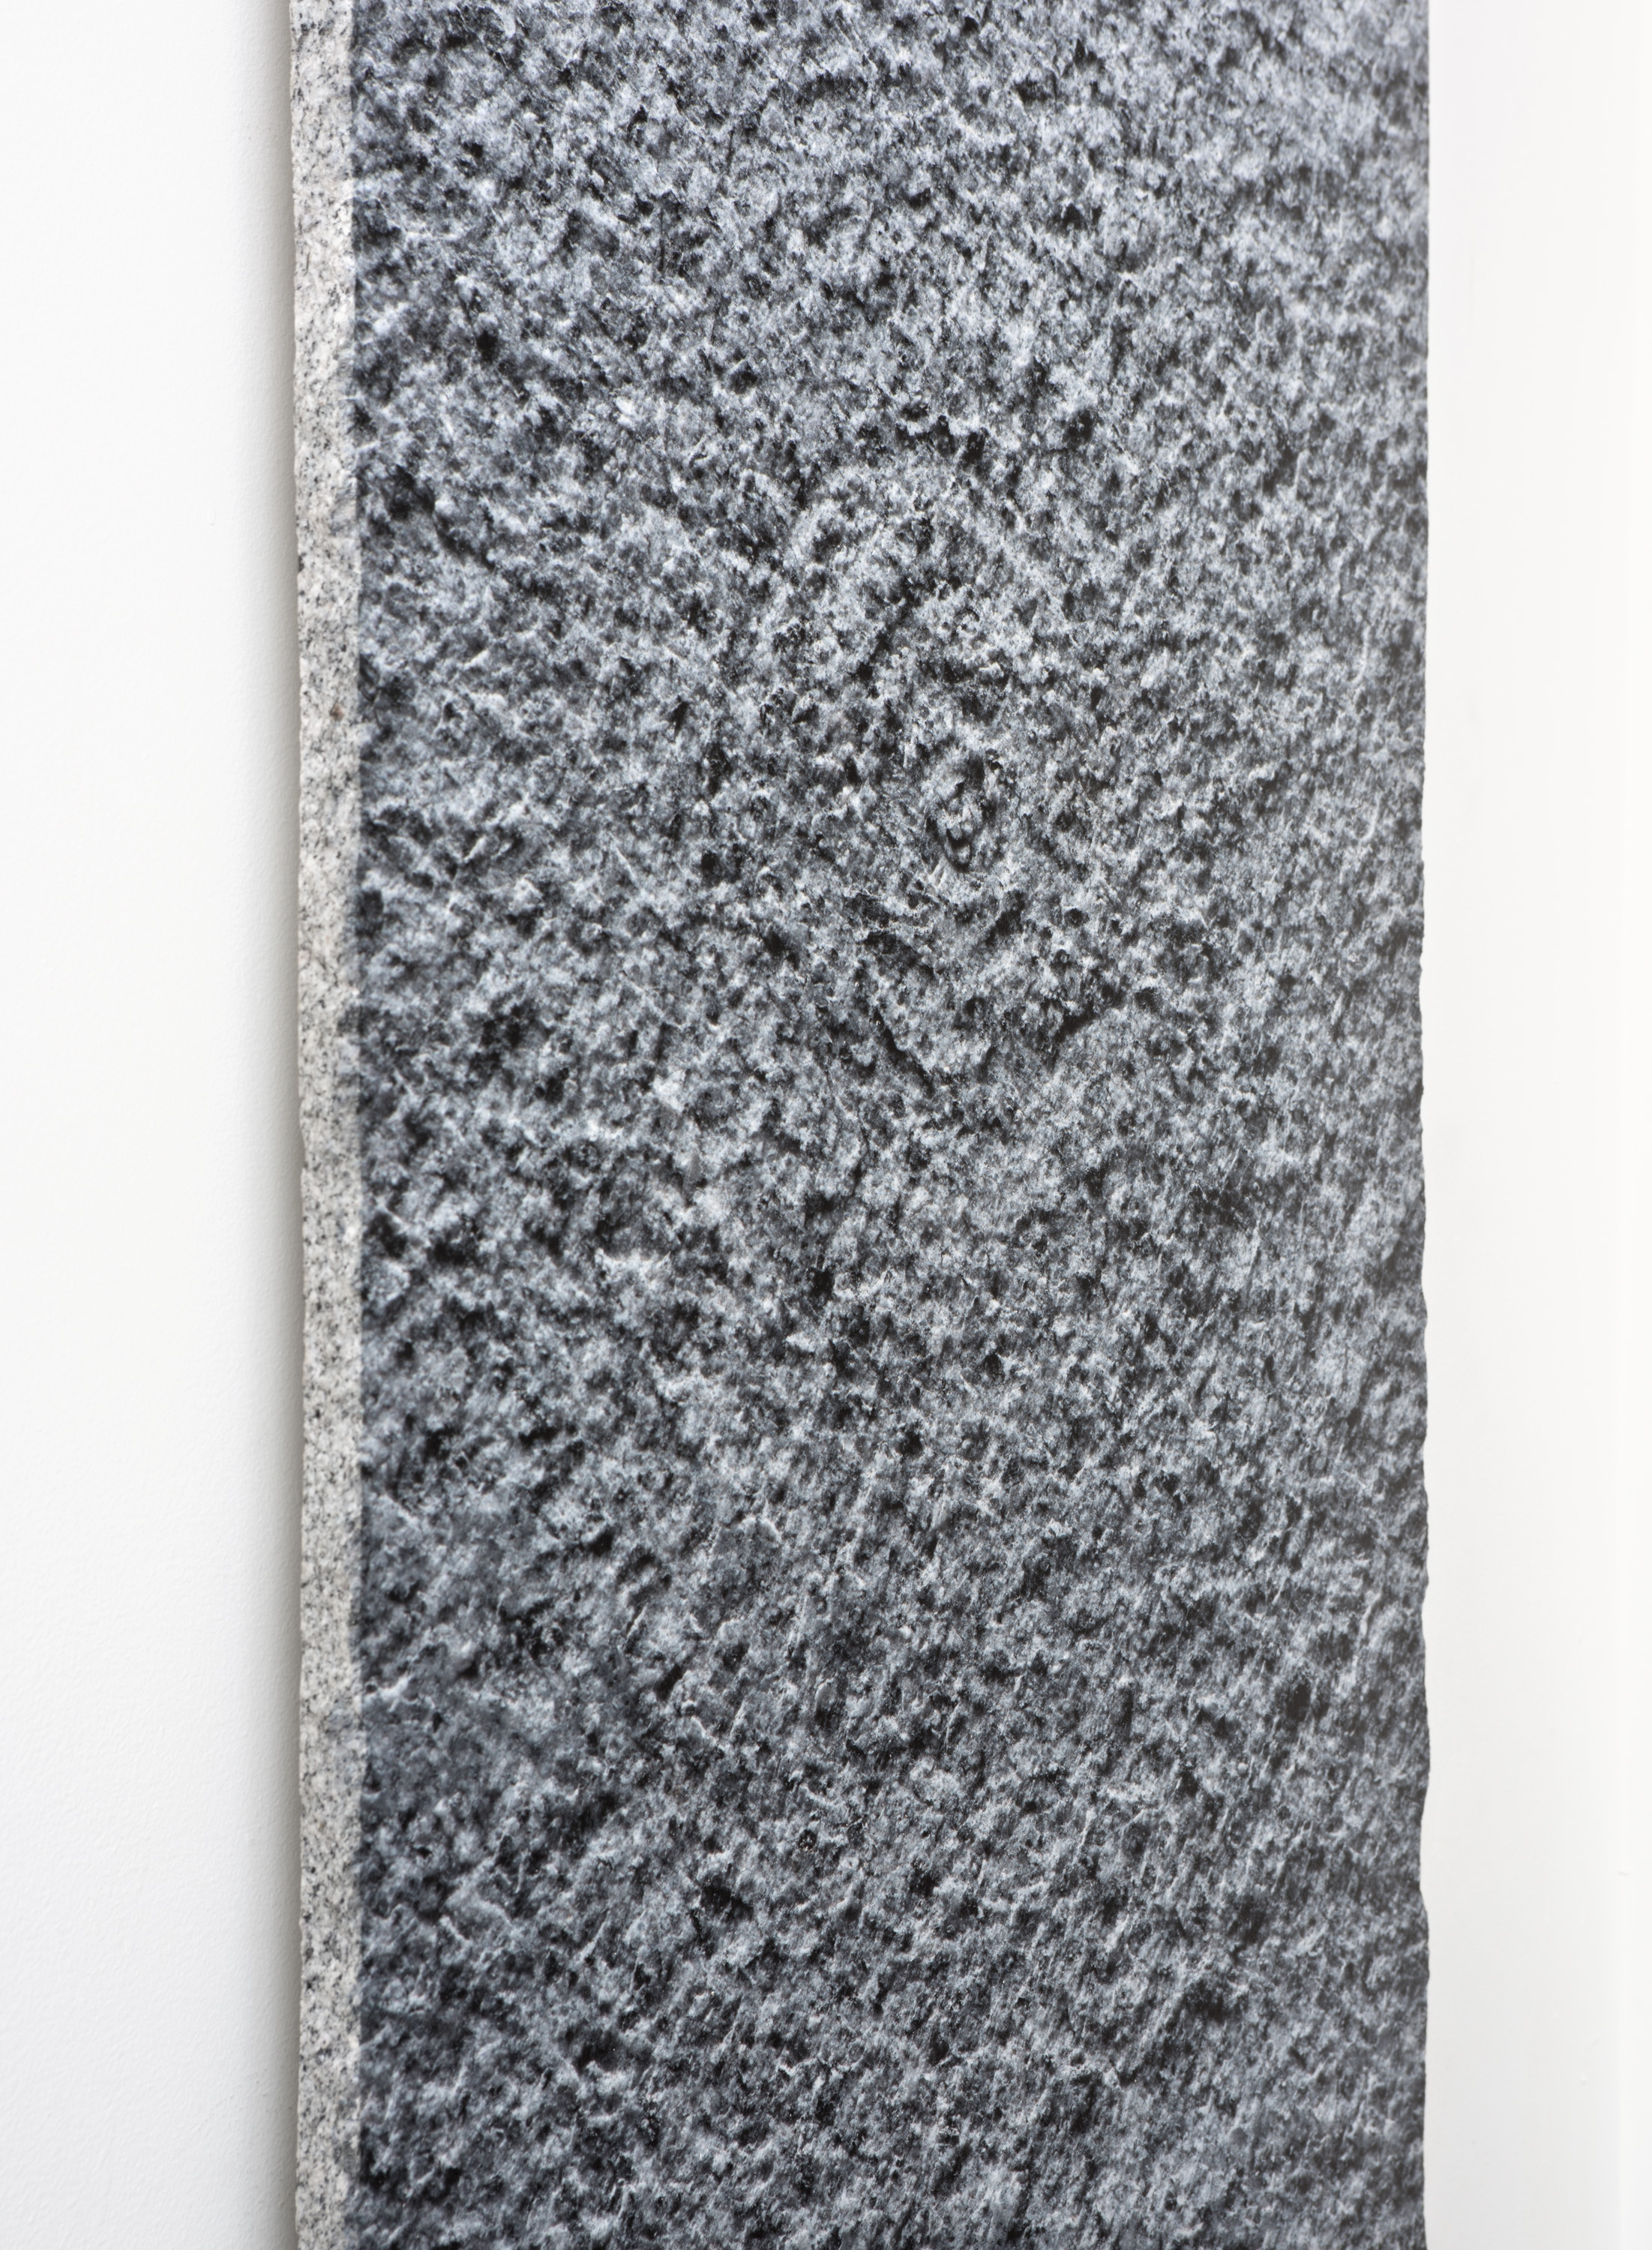 Granite Spiral I,  2019 (detail) UV ink on granite with concrete cleats 36x24 Inches